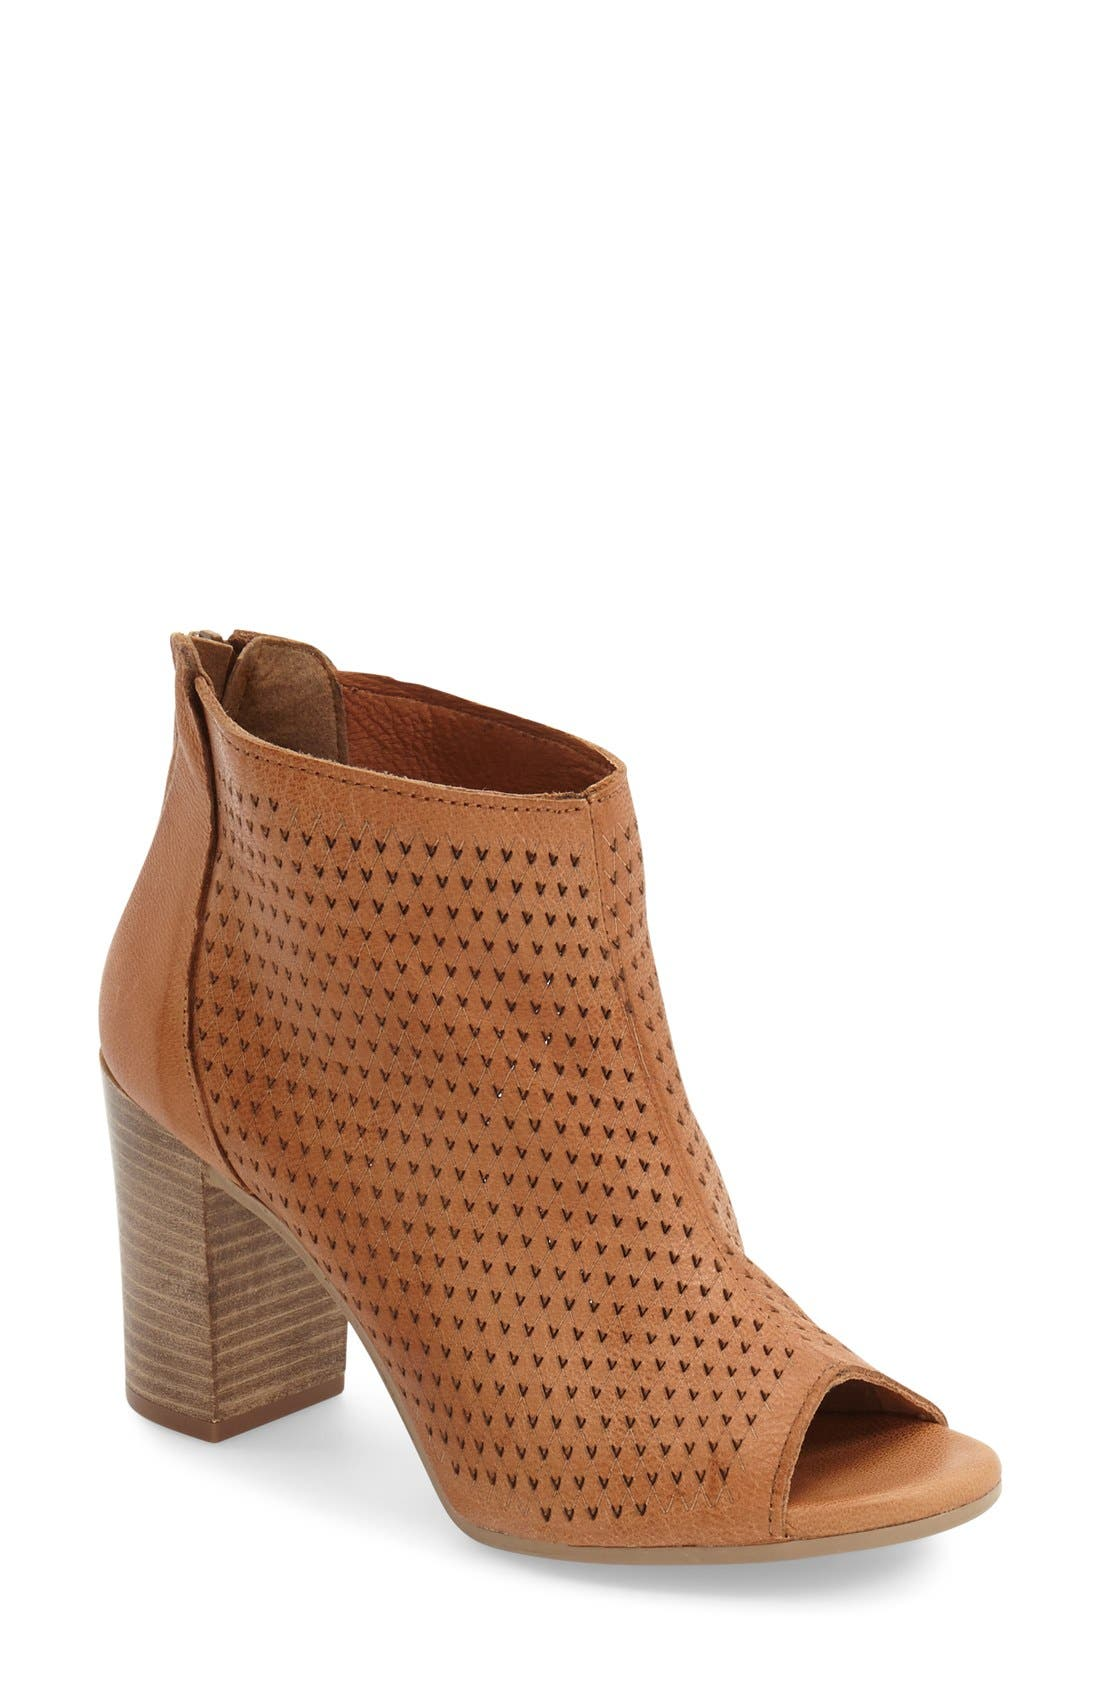 'Nina' Open Toe Bootie,                             Main thumbnail 1, color,                             Luggage Leather